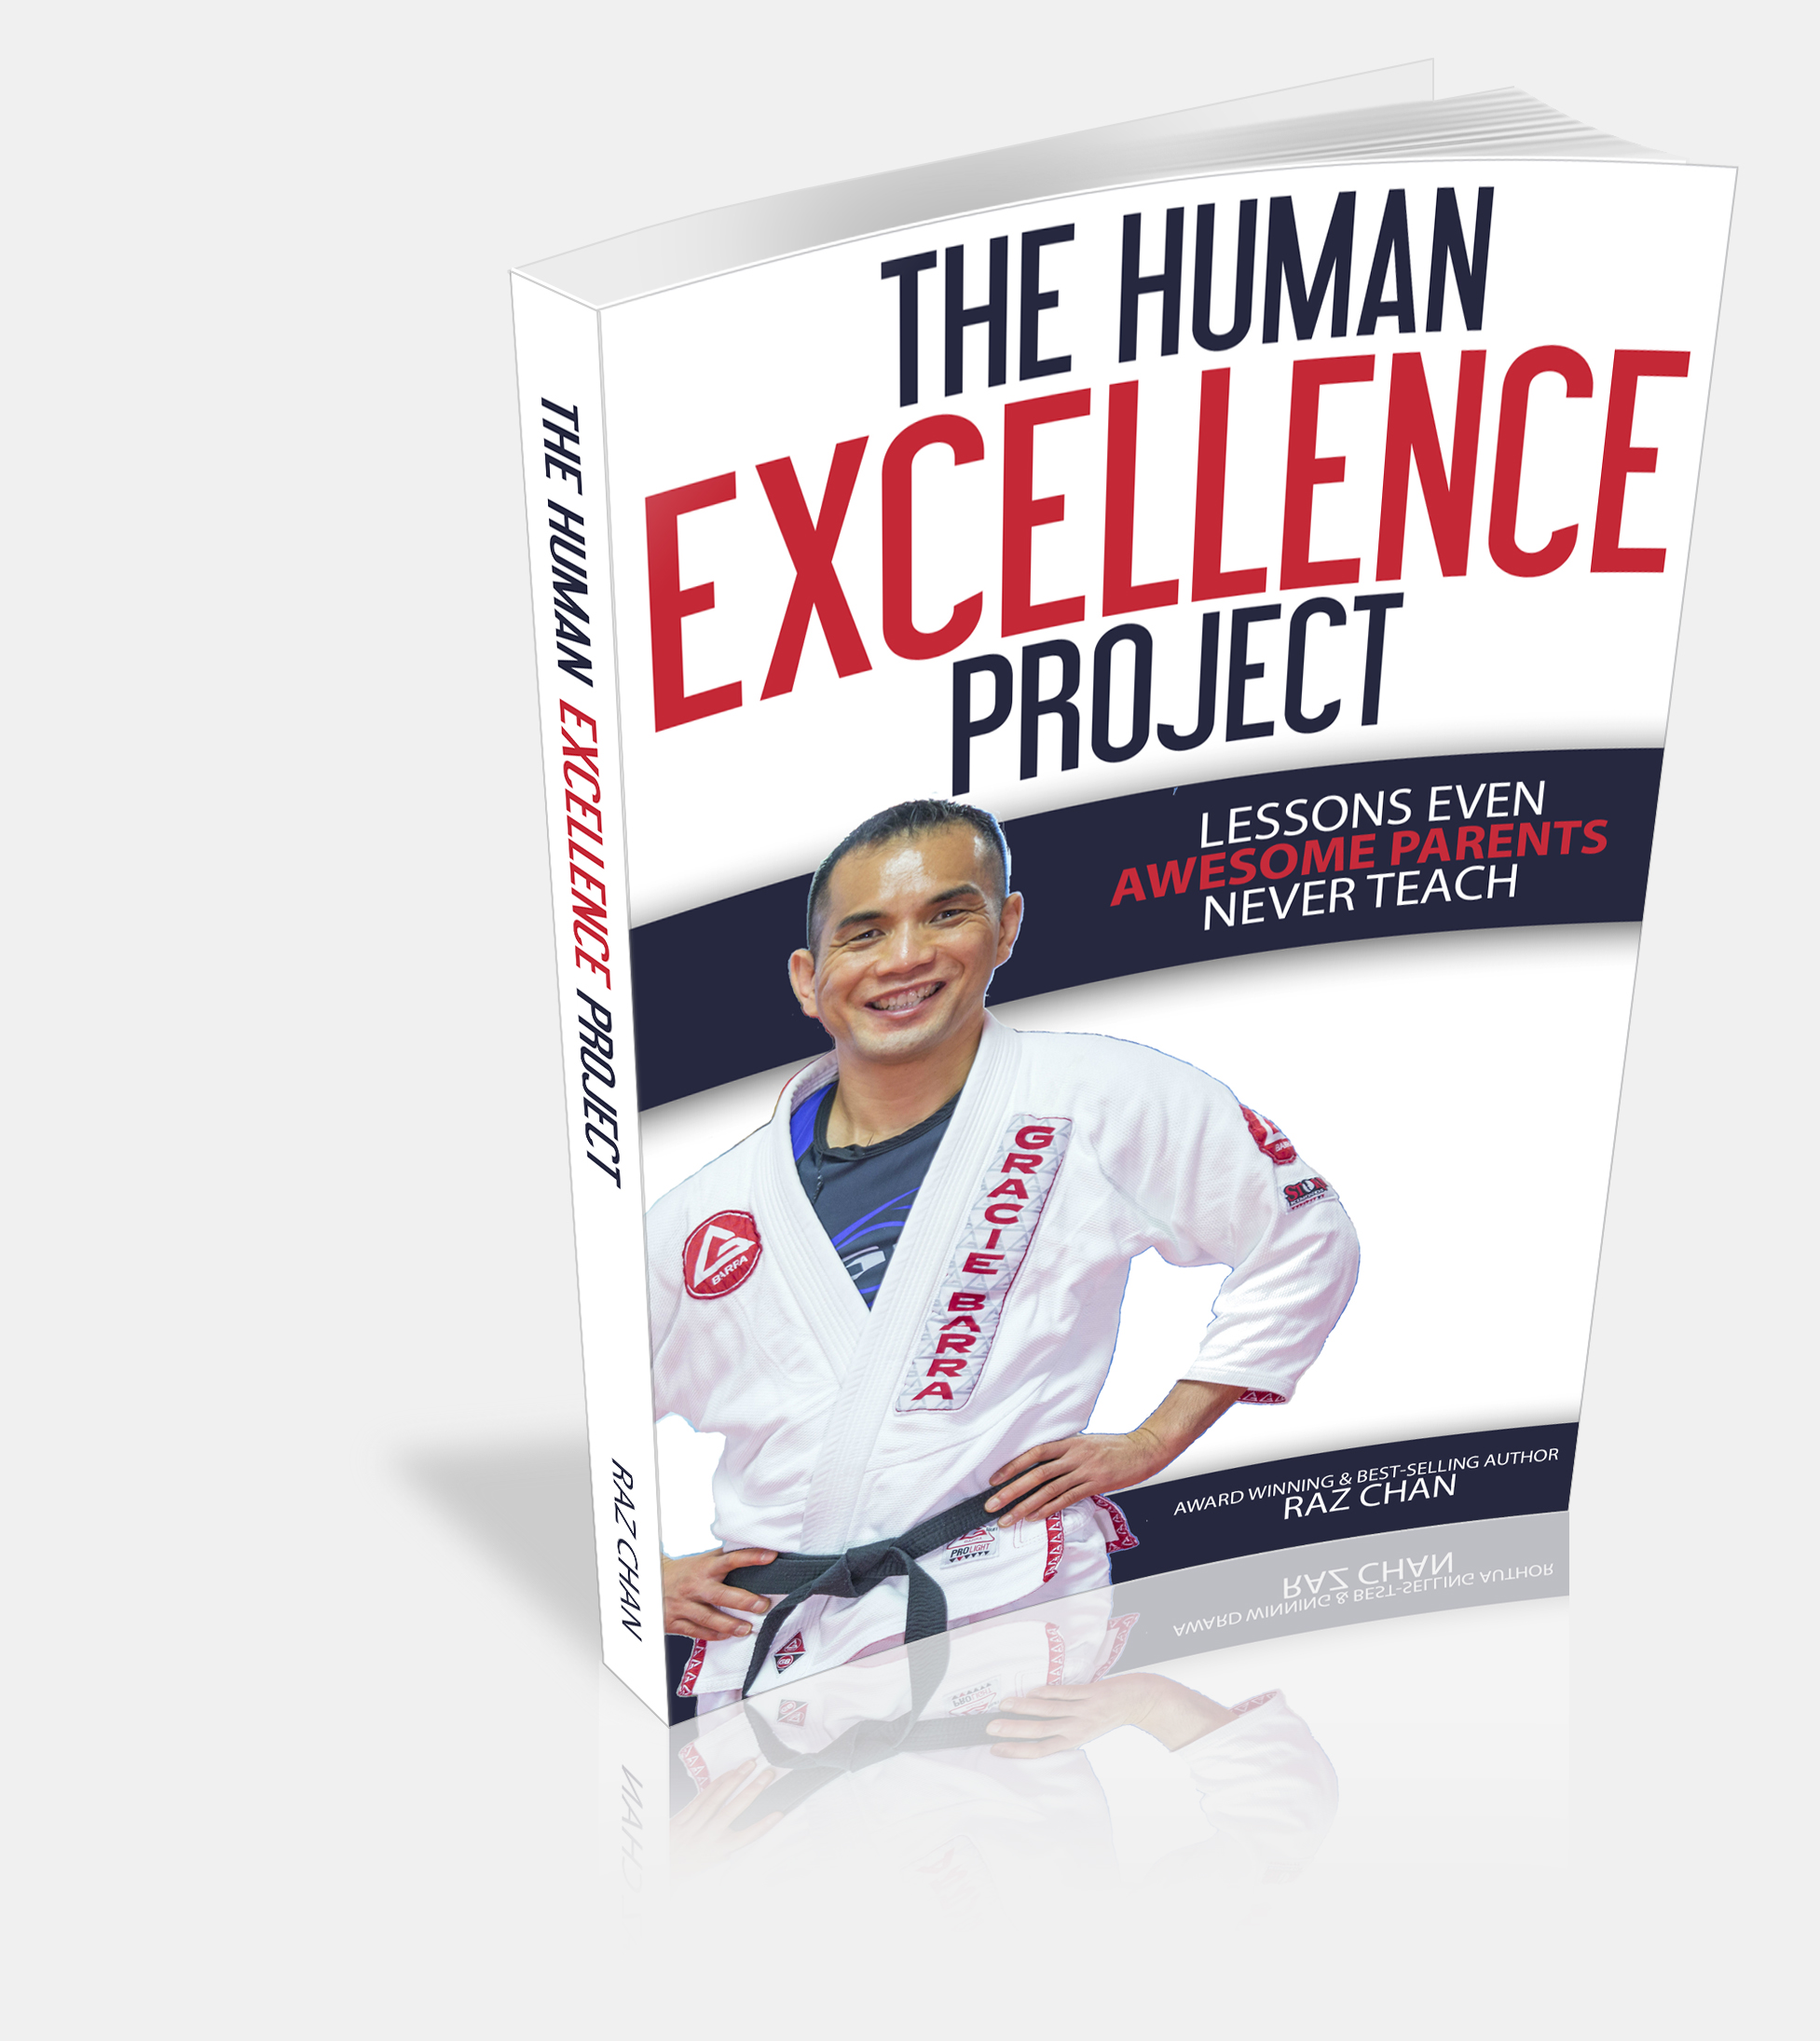 The Human Excellence Project book cover